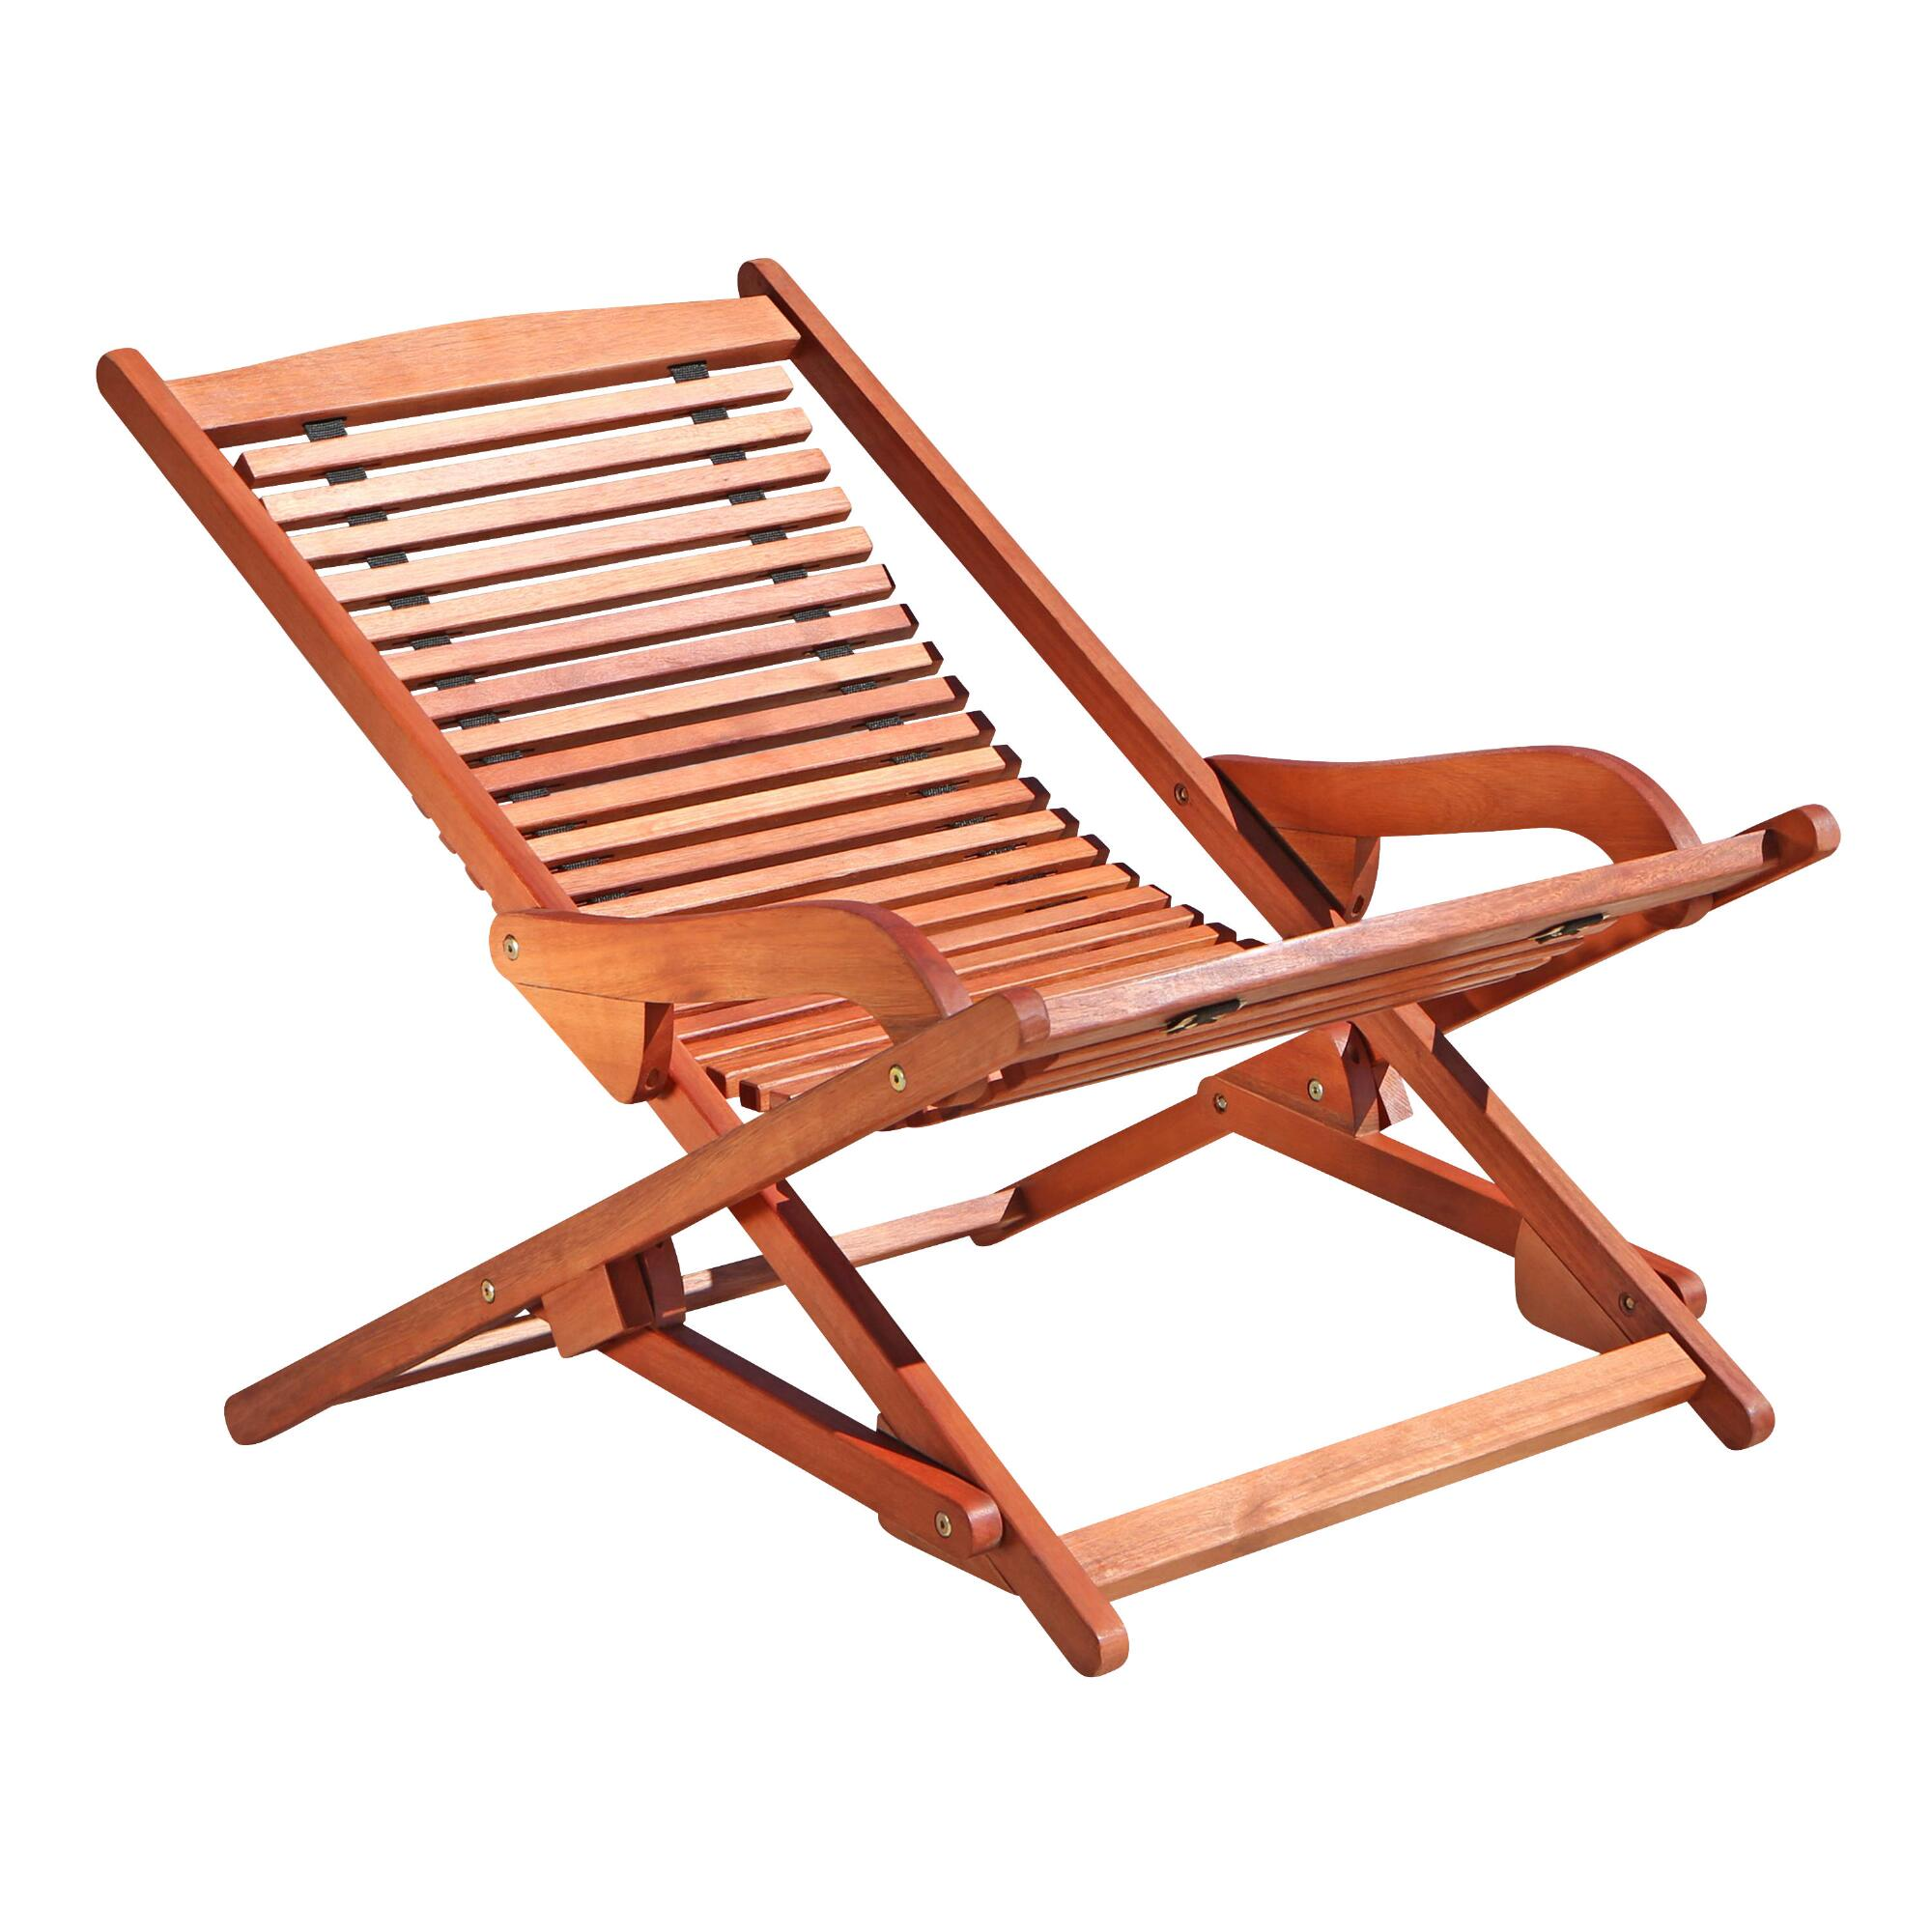 Patio folding chaise lounge world market - Folding outdoor chaise lounge ...